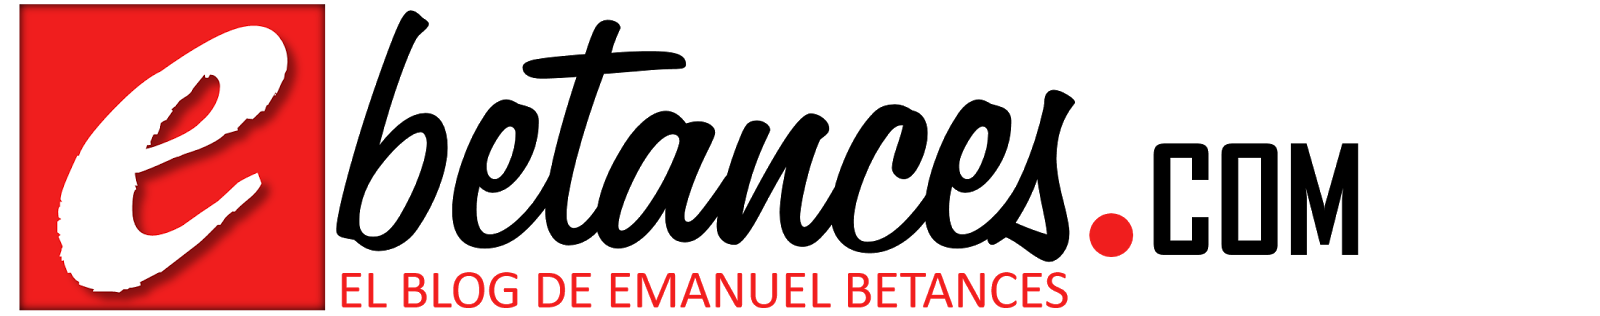 El Blog de Emanuel Betances